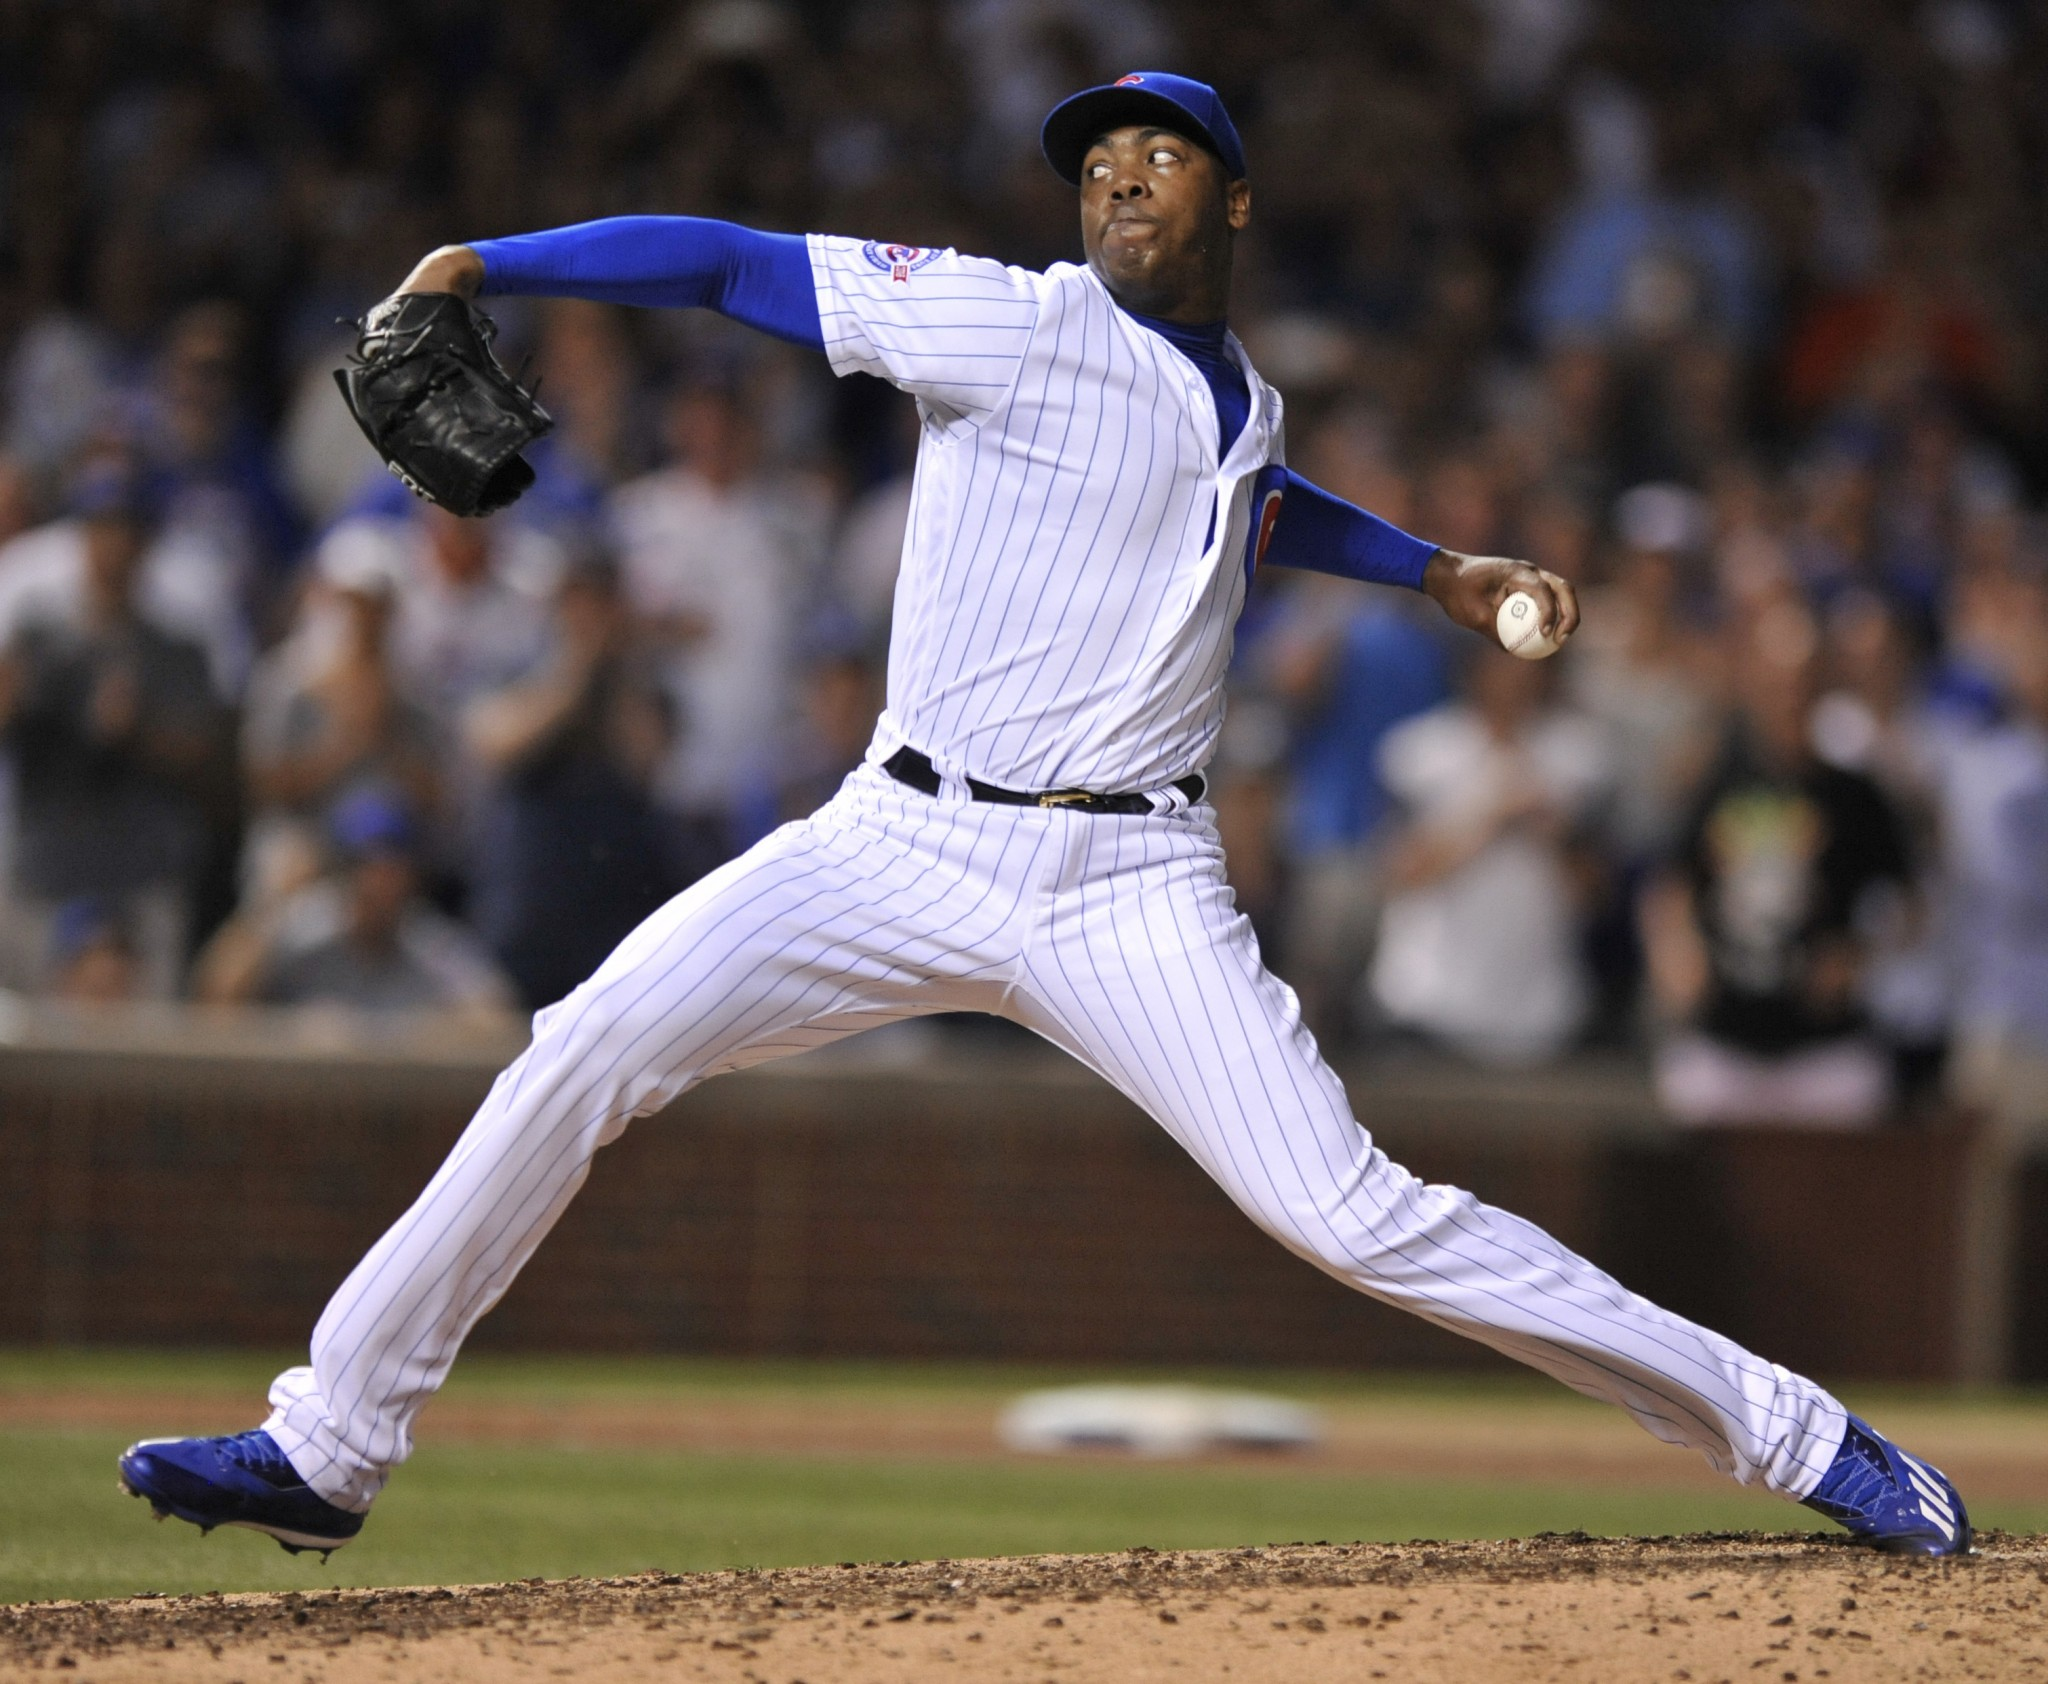 Cubs use incredibly insensitive song after Aroldis Chapman outi…